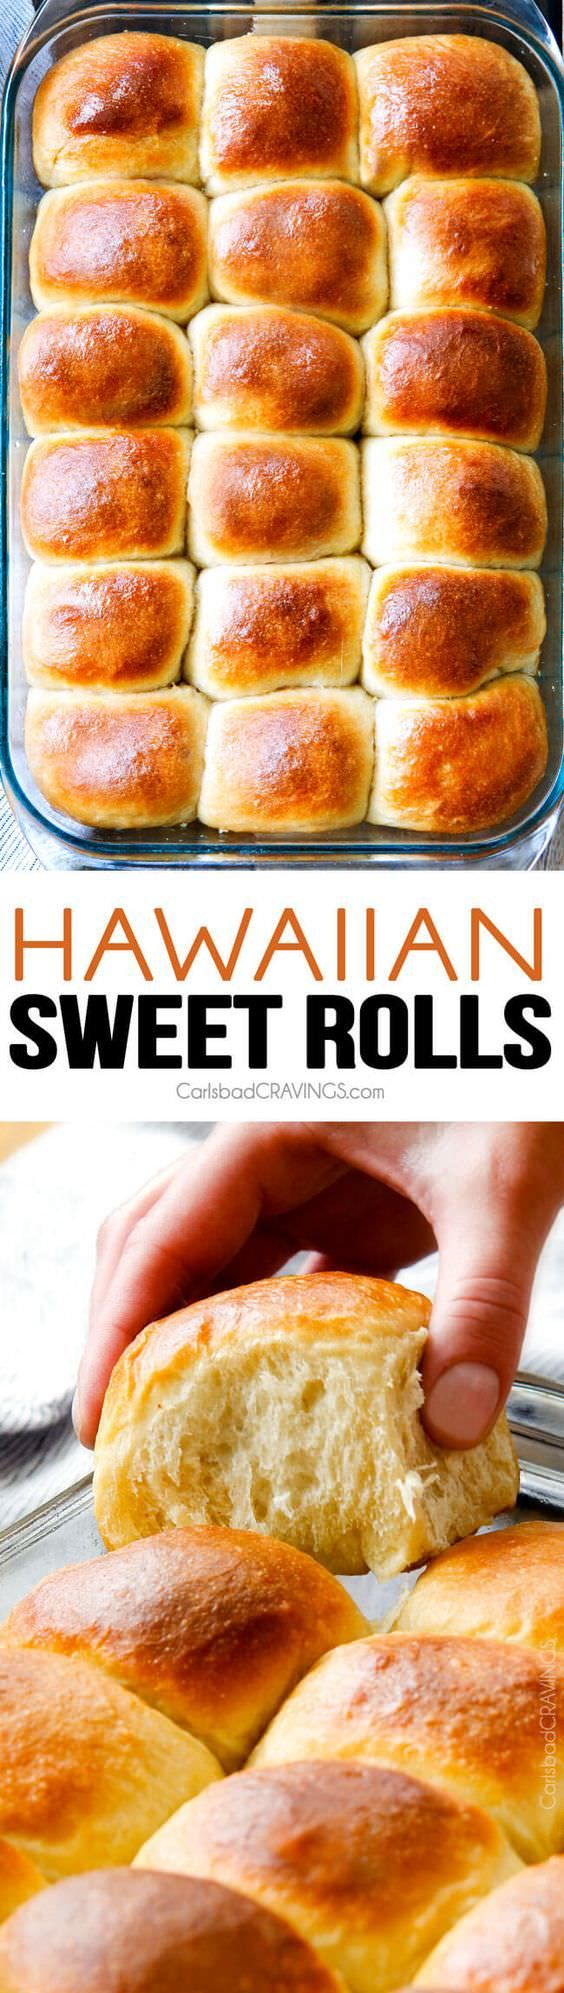 These Hawaiian sweet rolls are perfect for special ocassions so soft and fluffy with their delicious tropical flavor you'll love preparing them!